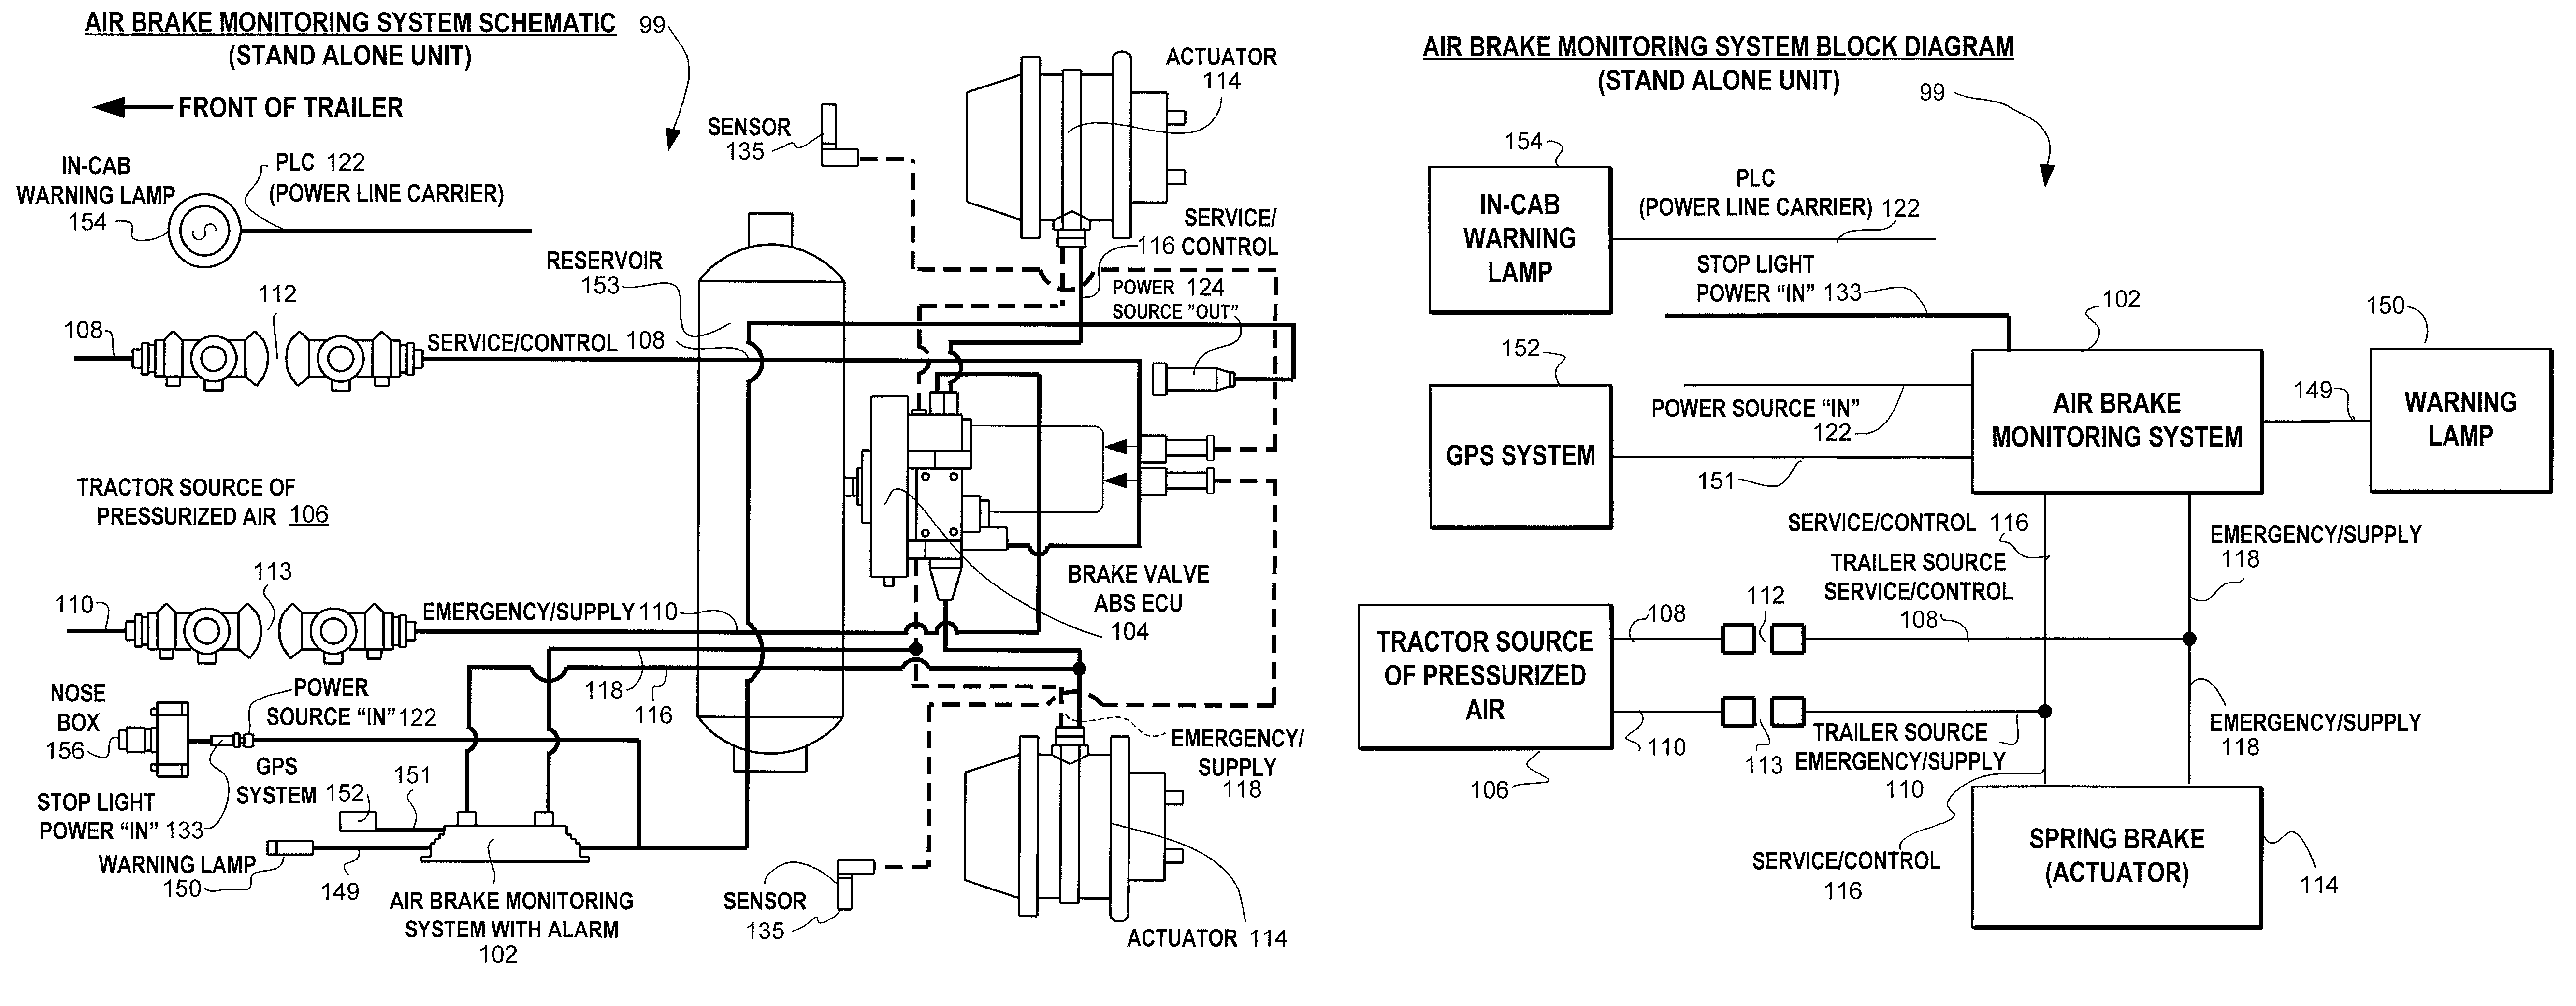 US08204668 20120619 D00000 patent us8204668 brake monitoring system google patents meritor abs wiring diagram at crackthecode.co